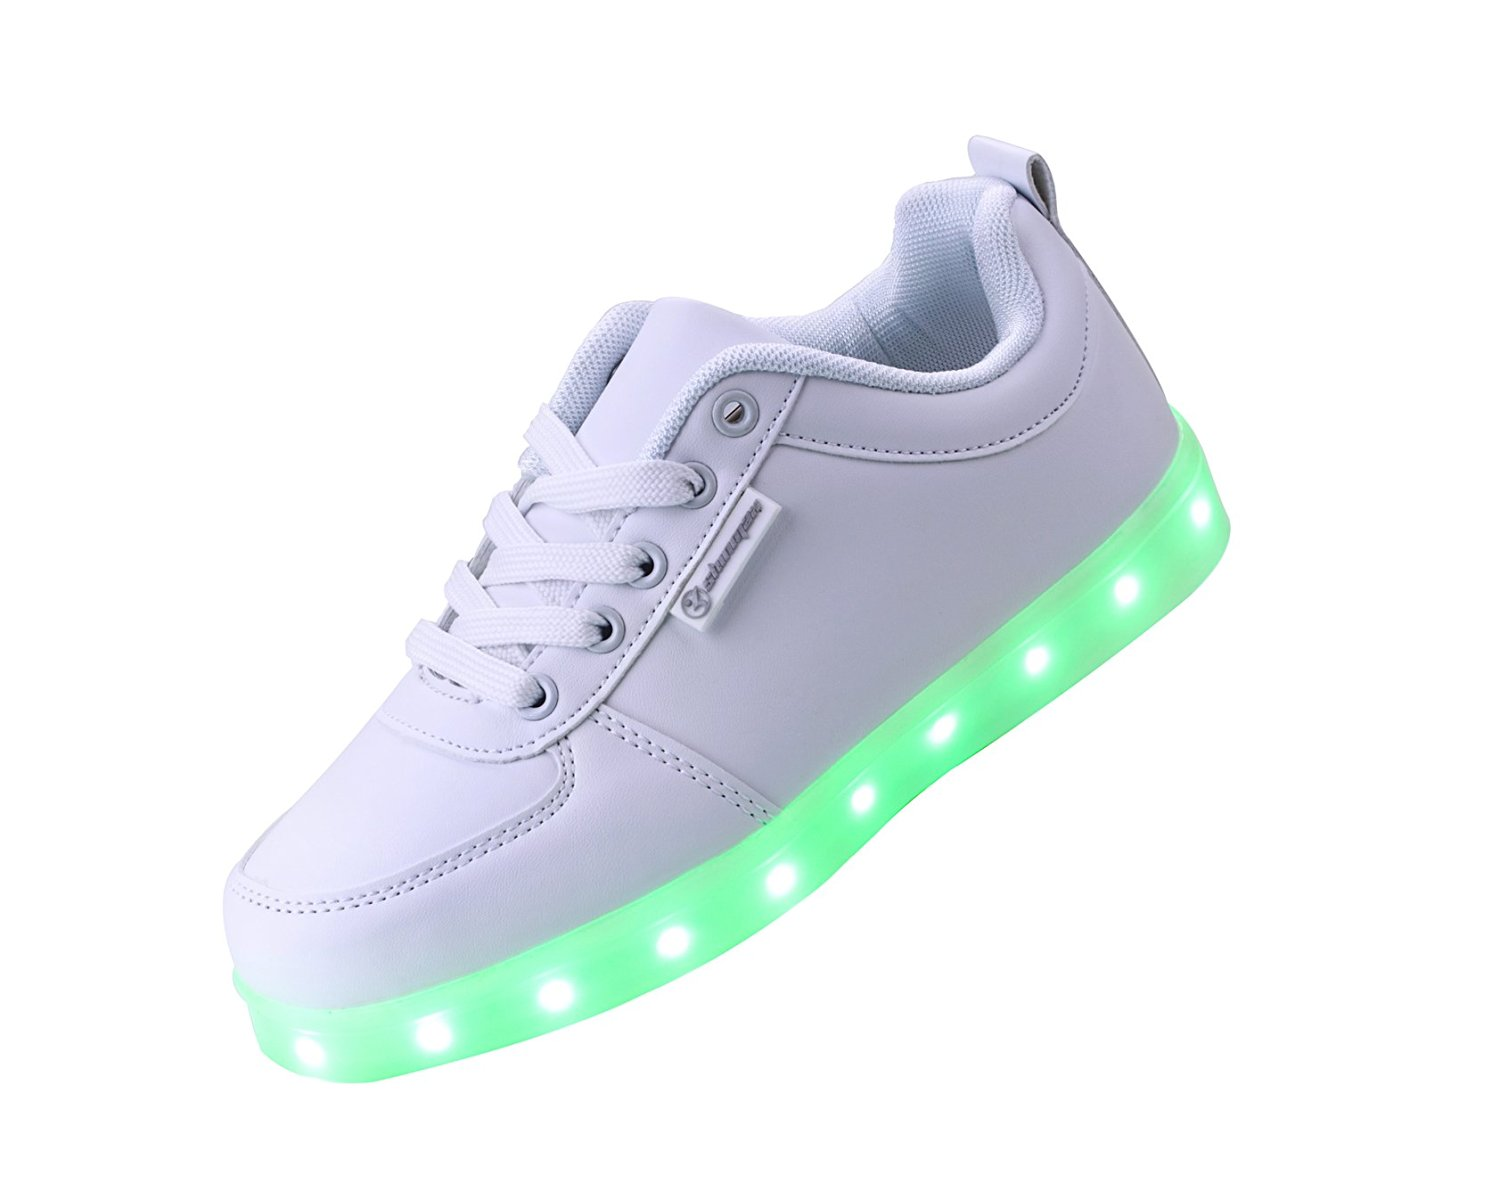 Shinmax LED Shoes LED Sneakers Shoes Adult Series 7 Colors LED Shoes USB Rechargable Light Up Shoes Flashing Sneakers of Unisex Men and Women for Valentine's Day Christmas Halloween with CE Certificate